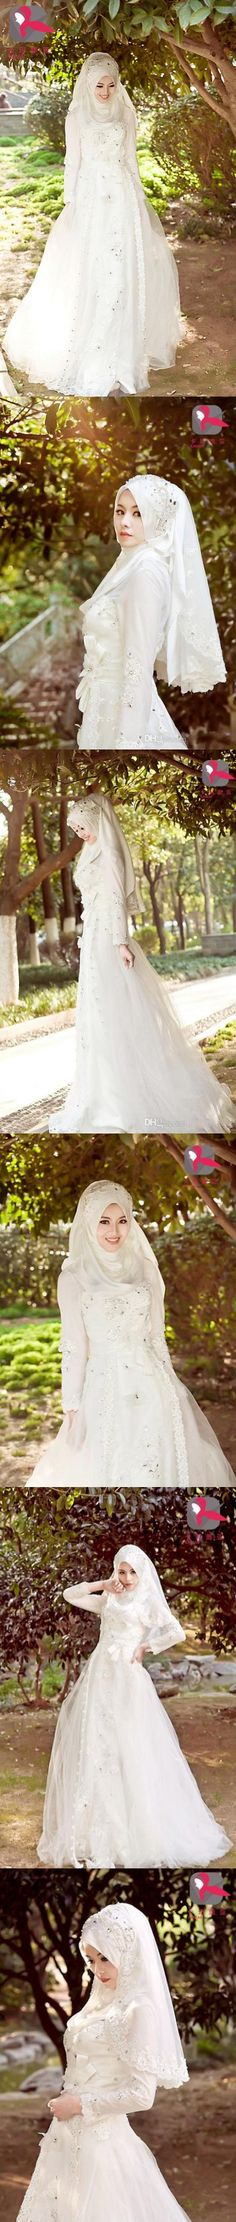 Muslim Wedding Dresses 2016 Vintage Bridal Gowns A Line Lace Appliques Beading Crystals Bow Tie Sash Long Sleeves Arabian Gowns $286